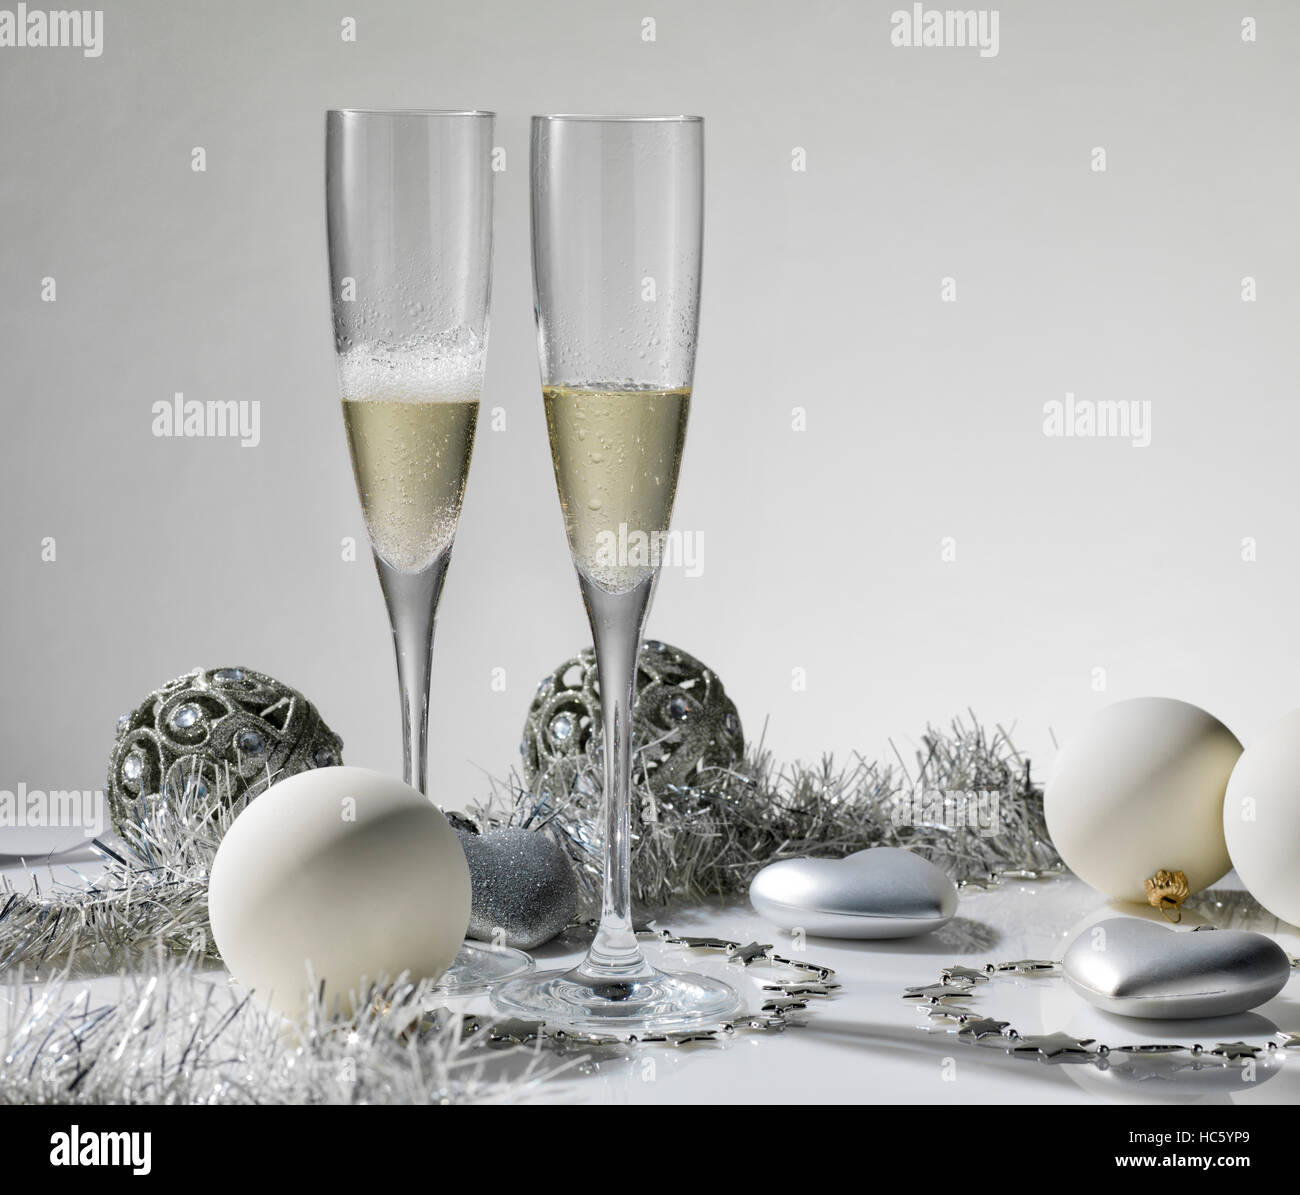 Champagne glasses ready to bring in the New Year - Stock Image